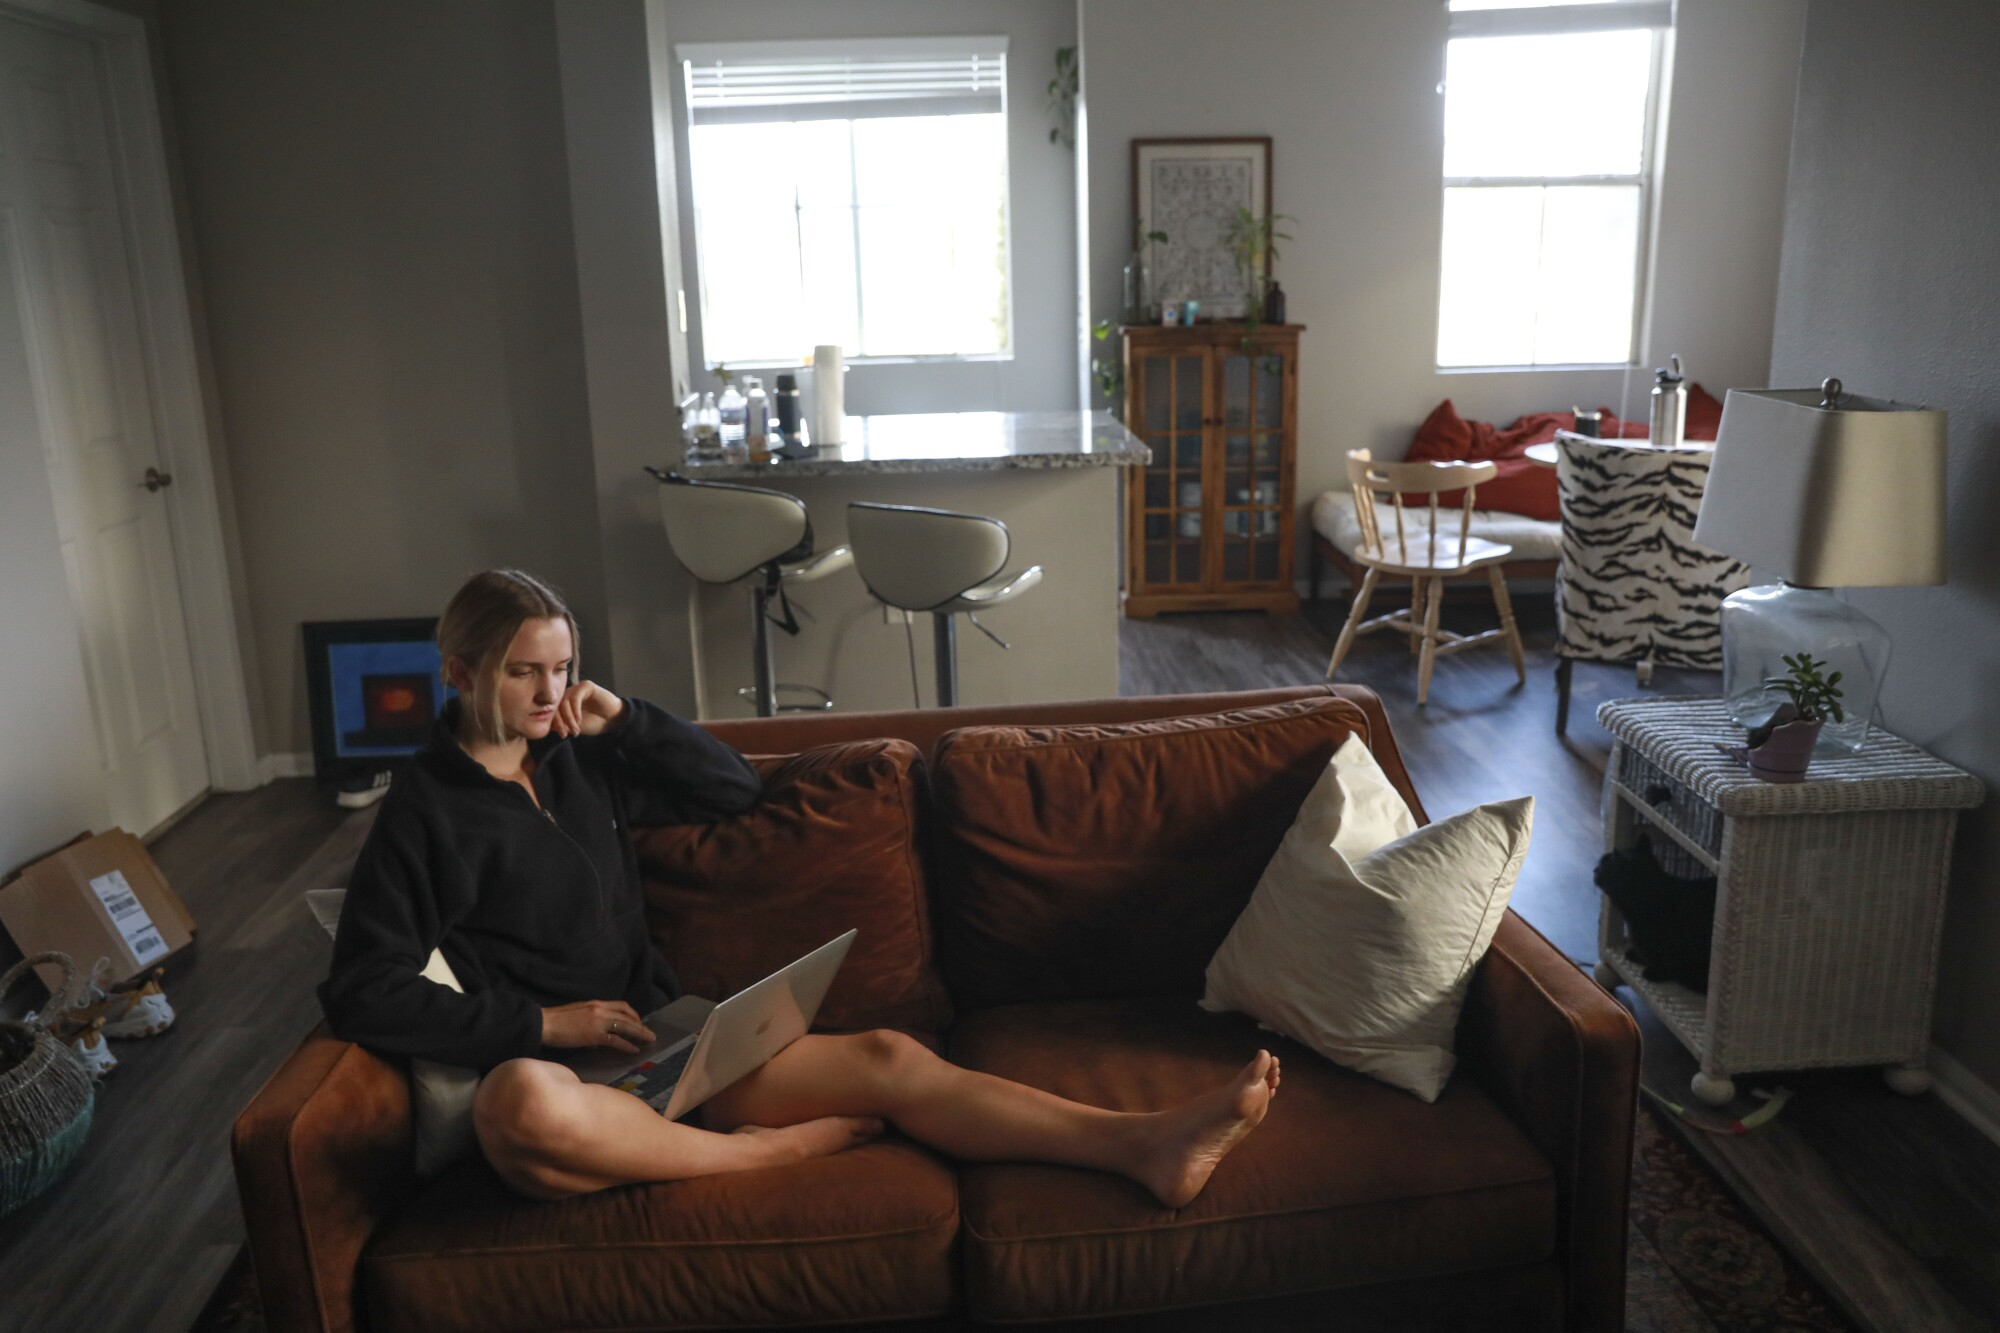 Athena Leisching, a junior at UC San Diego, is struggling to find affordable off-campus housing.